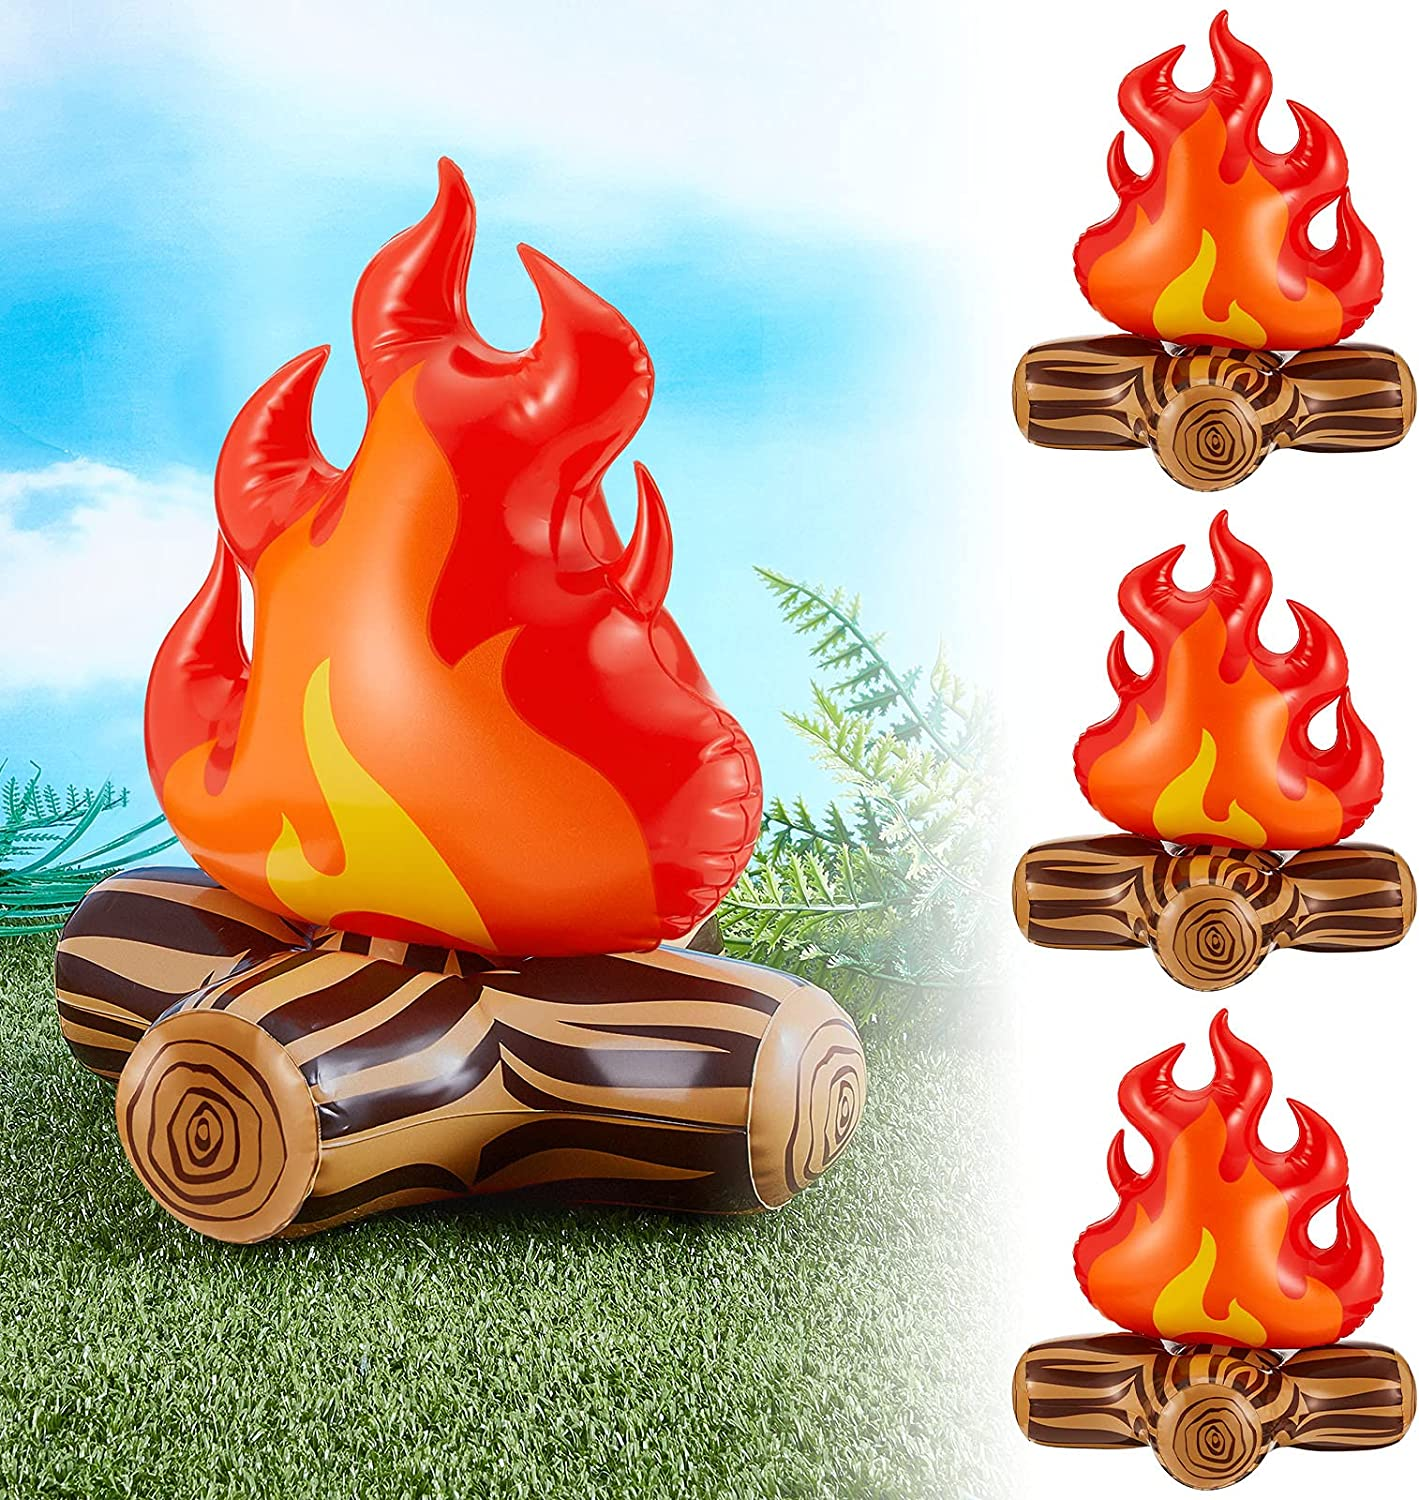 Sumind 4 Pieces of 12 Inch Inflatable Campfire Props, Camping Party Bonfire Party Scene Decoration, Indoor and Outdoor Camping Game Props for Boys and Girls Bonfire Firewood Toys